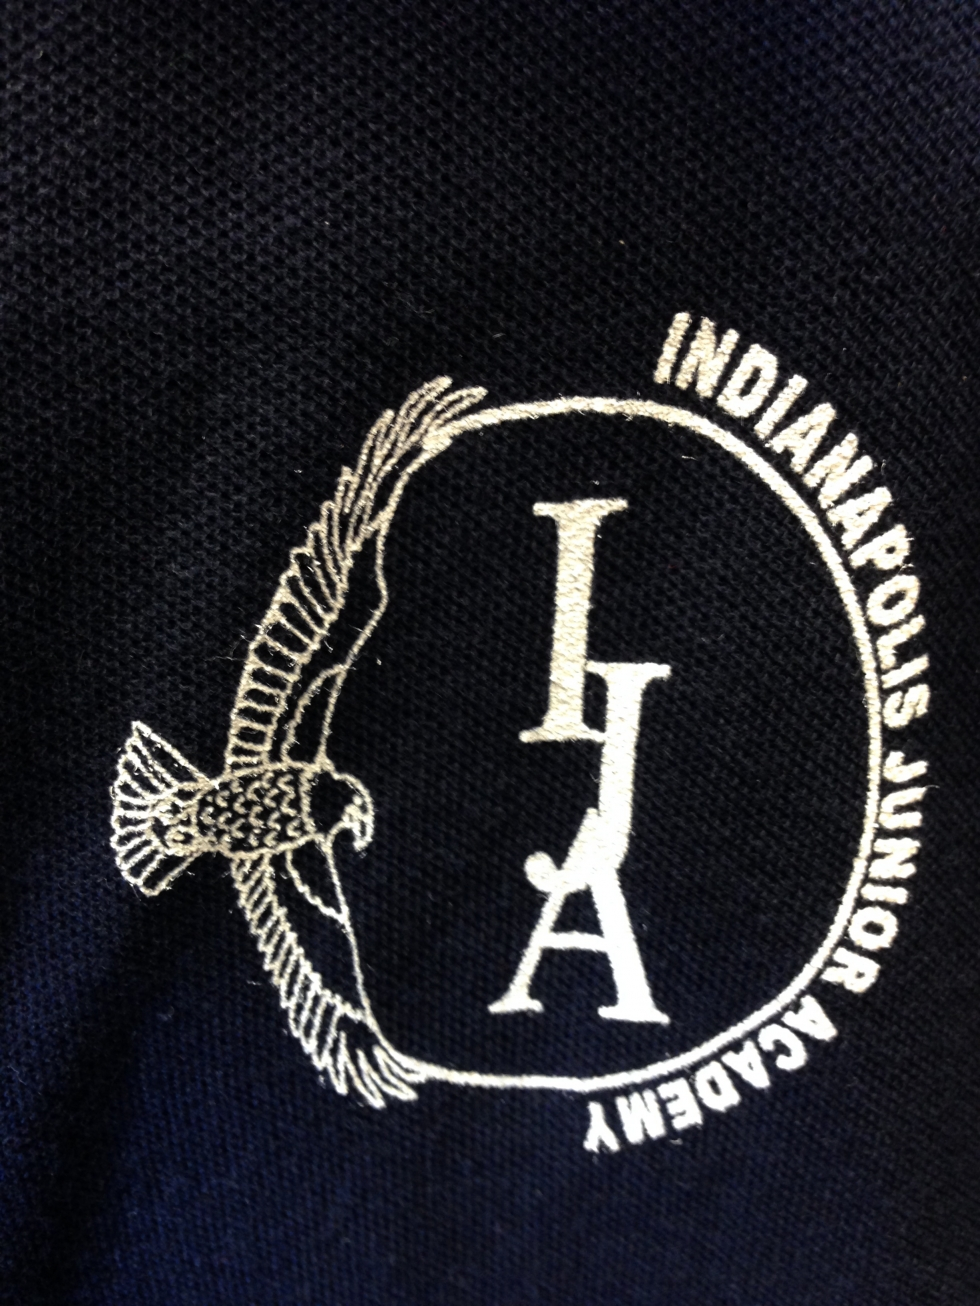 Indianapolis Junior Academy